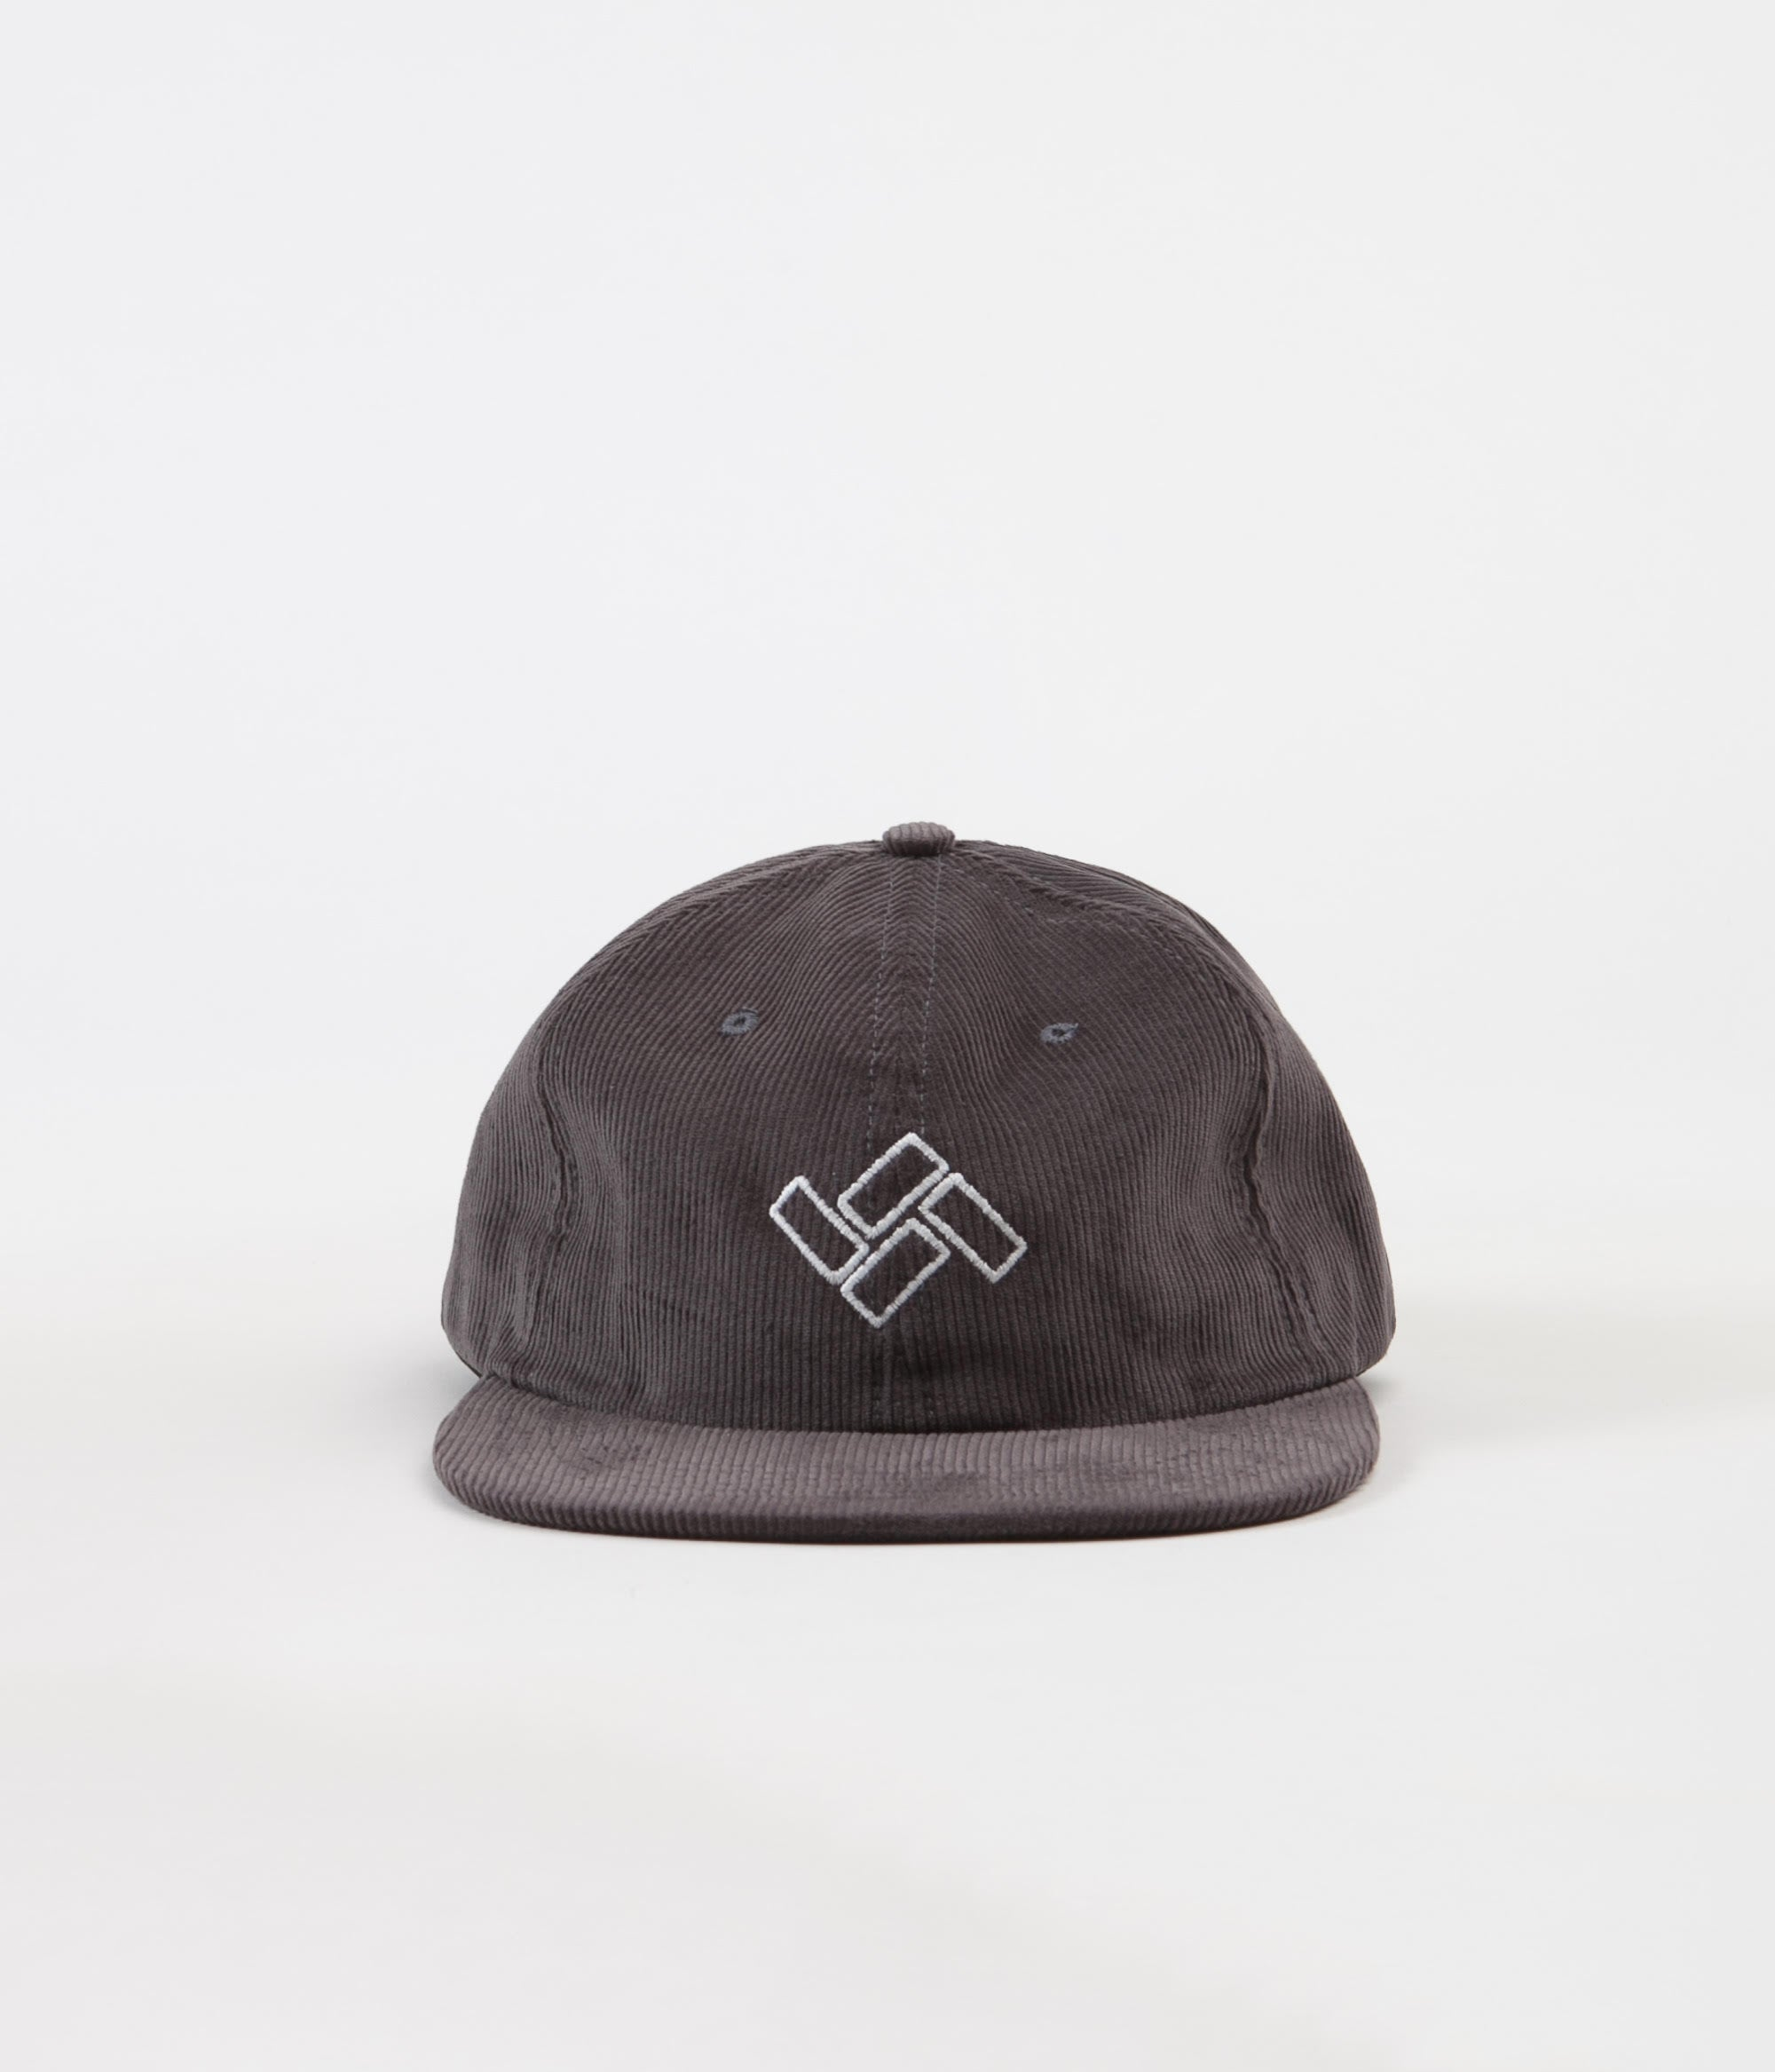 Severn Bricks Cord 6 Panel Cap - Charcoal